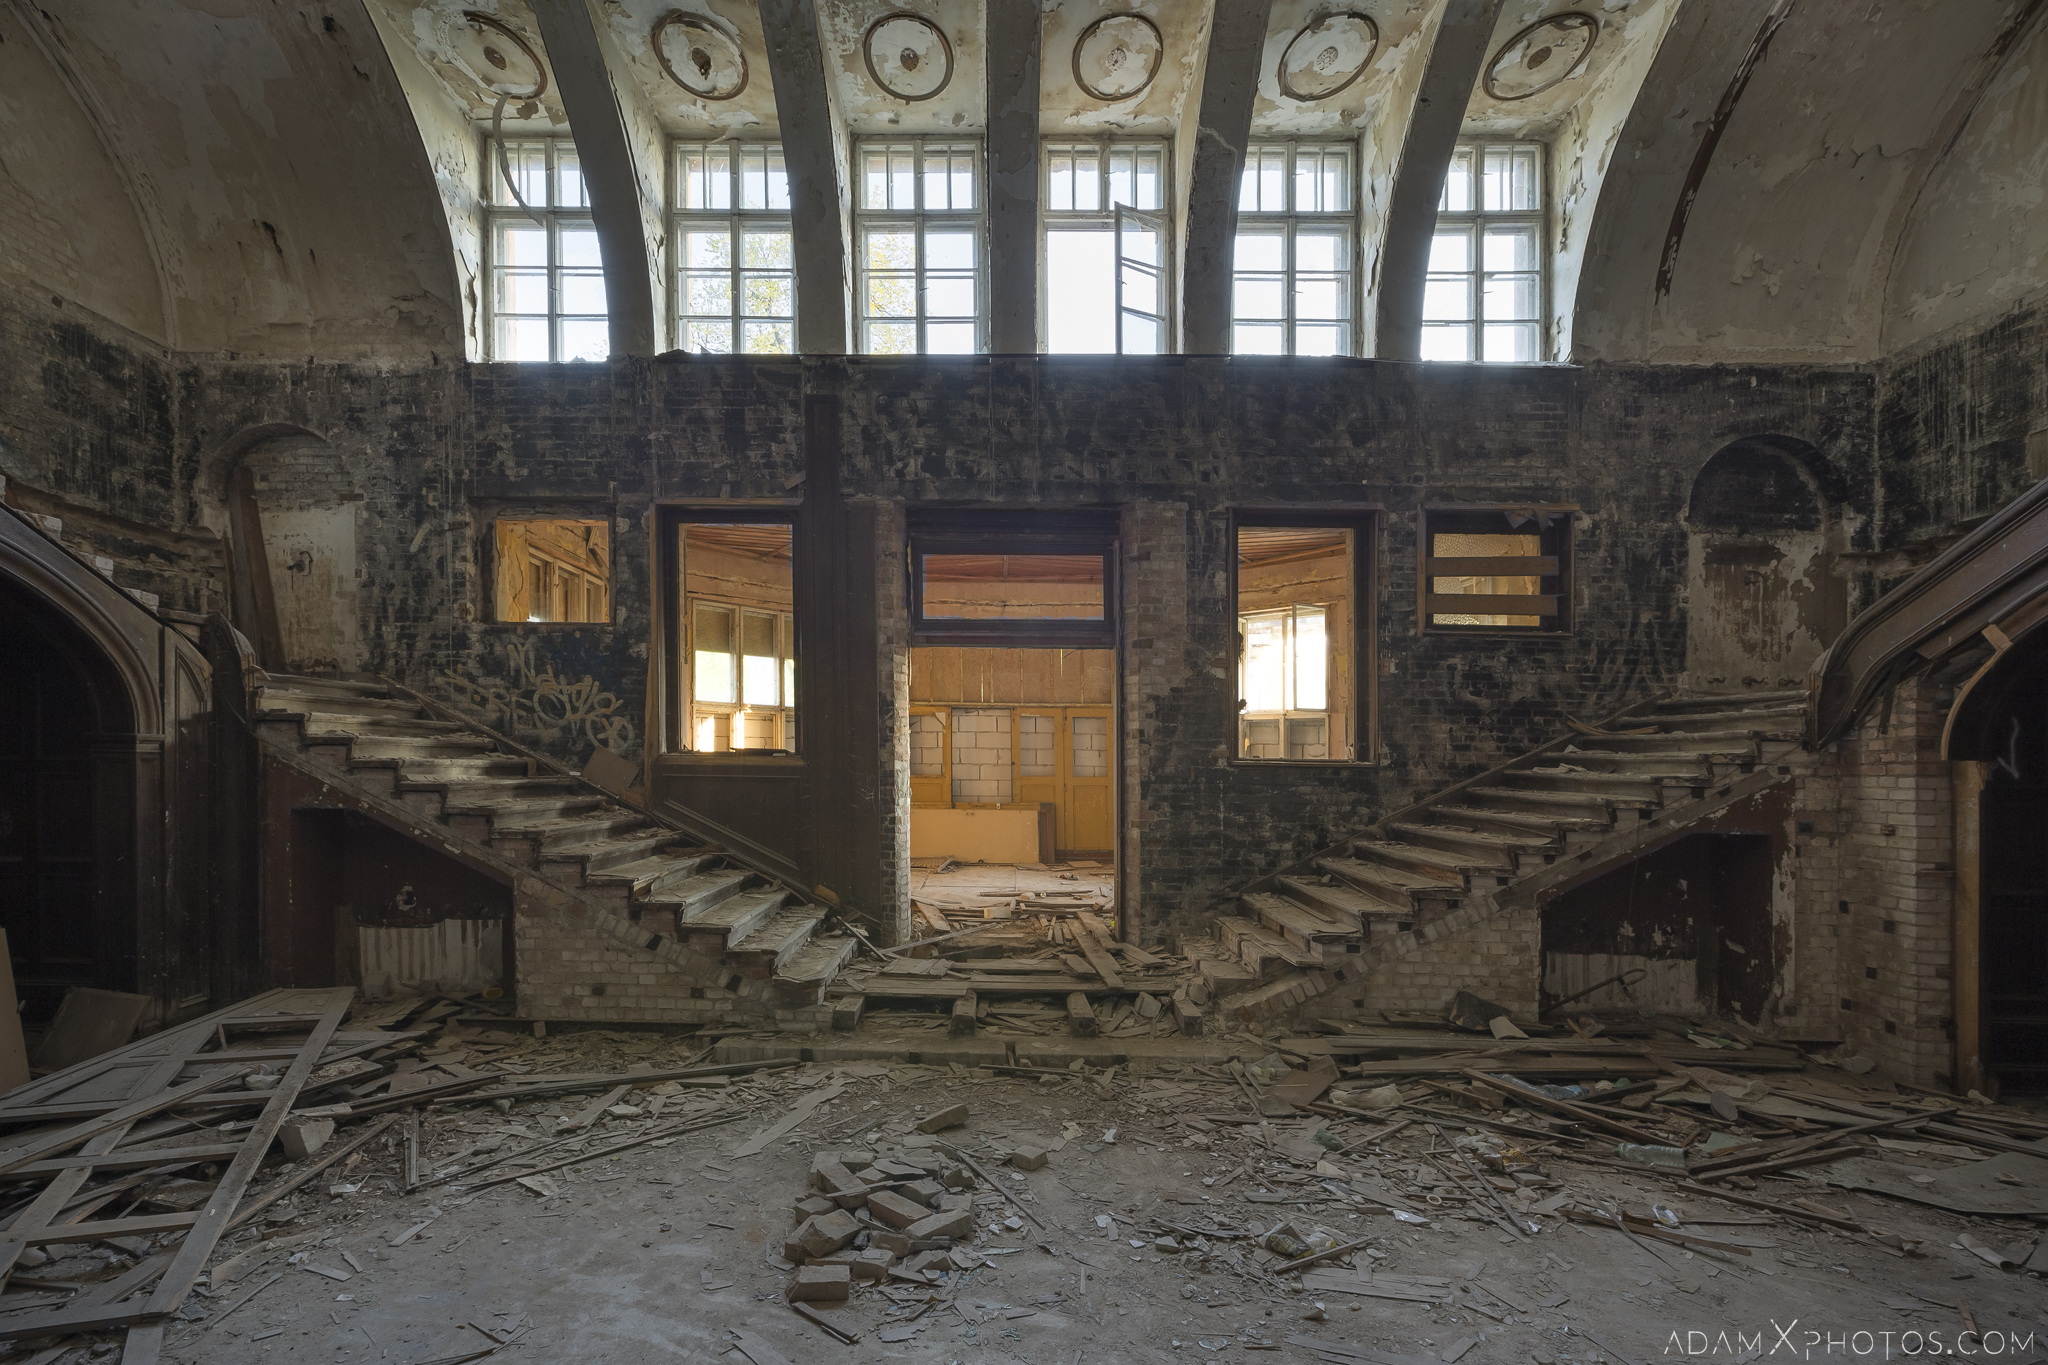 Twin Split Stairs Staircase windows ruins Great Belcz Palace Pałac w Bełczu Wielkim Urbex Poland Adam X Urban Exploration Access 2016 Abandoned decay lost forgotten derelict location haunting eerie